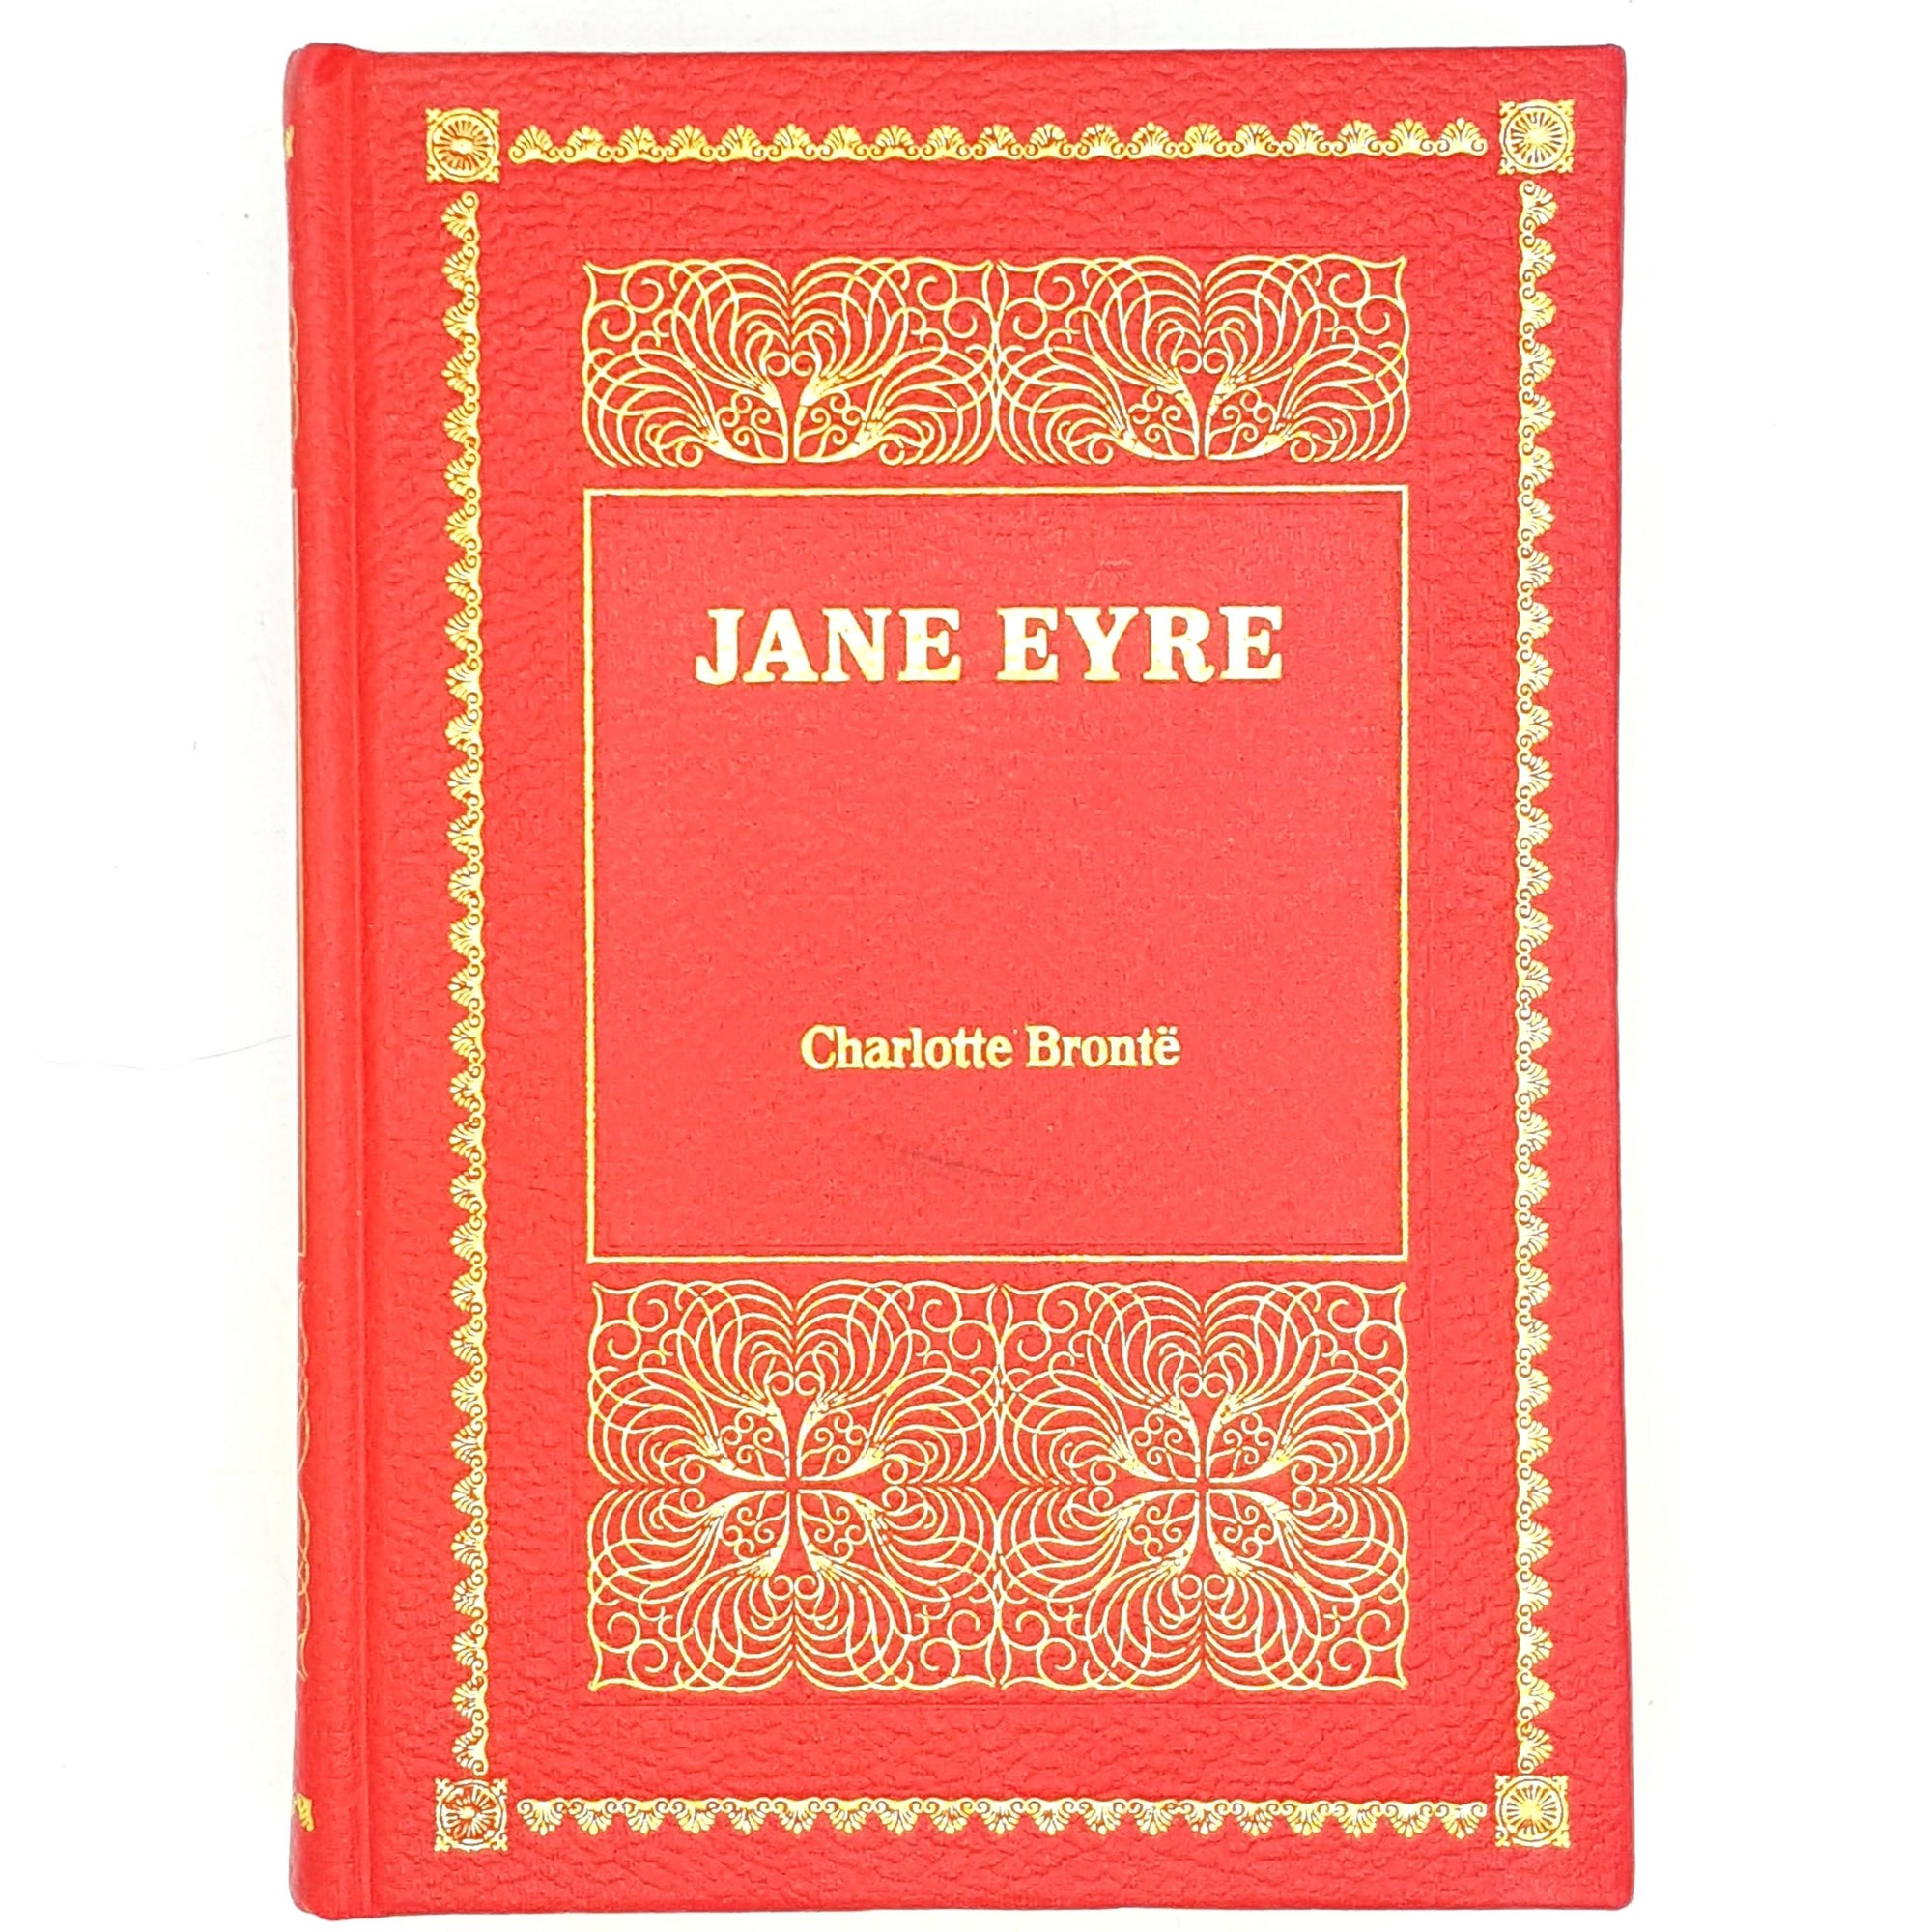 thrift-decorative-charlotte-bronte-old-country-house-library-books-1984-vintage-purnell-book-classics-red-jane-eyre-